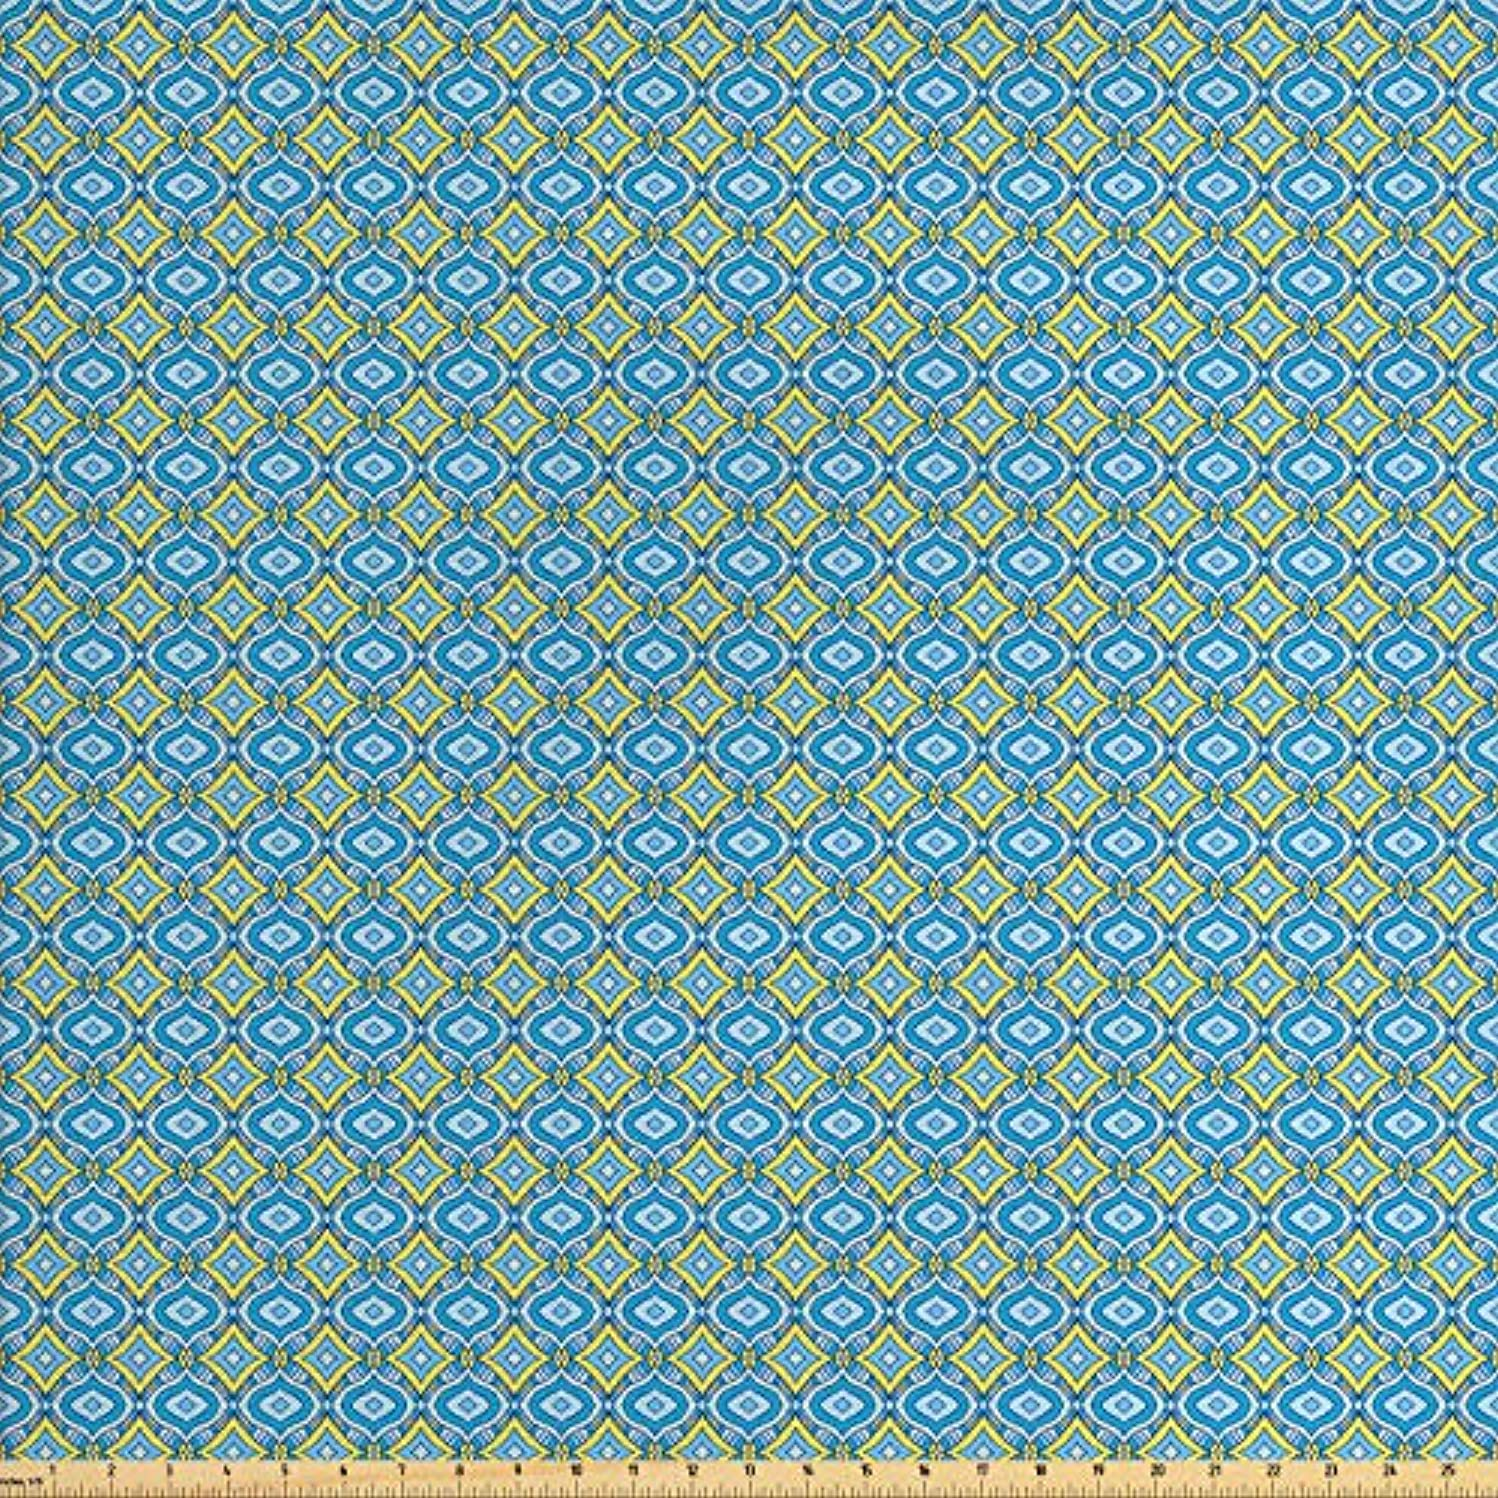 Lunarable Yellow and Blue Fabric by The Yard, Hand Drawn Abstract Ornament Rhombus Shapes Artistic Mosaic Vintage, Decorative Fabric for Upholstery and Home Accents, 1 Yard, Blue Aqua Yellow